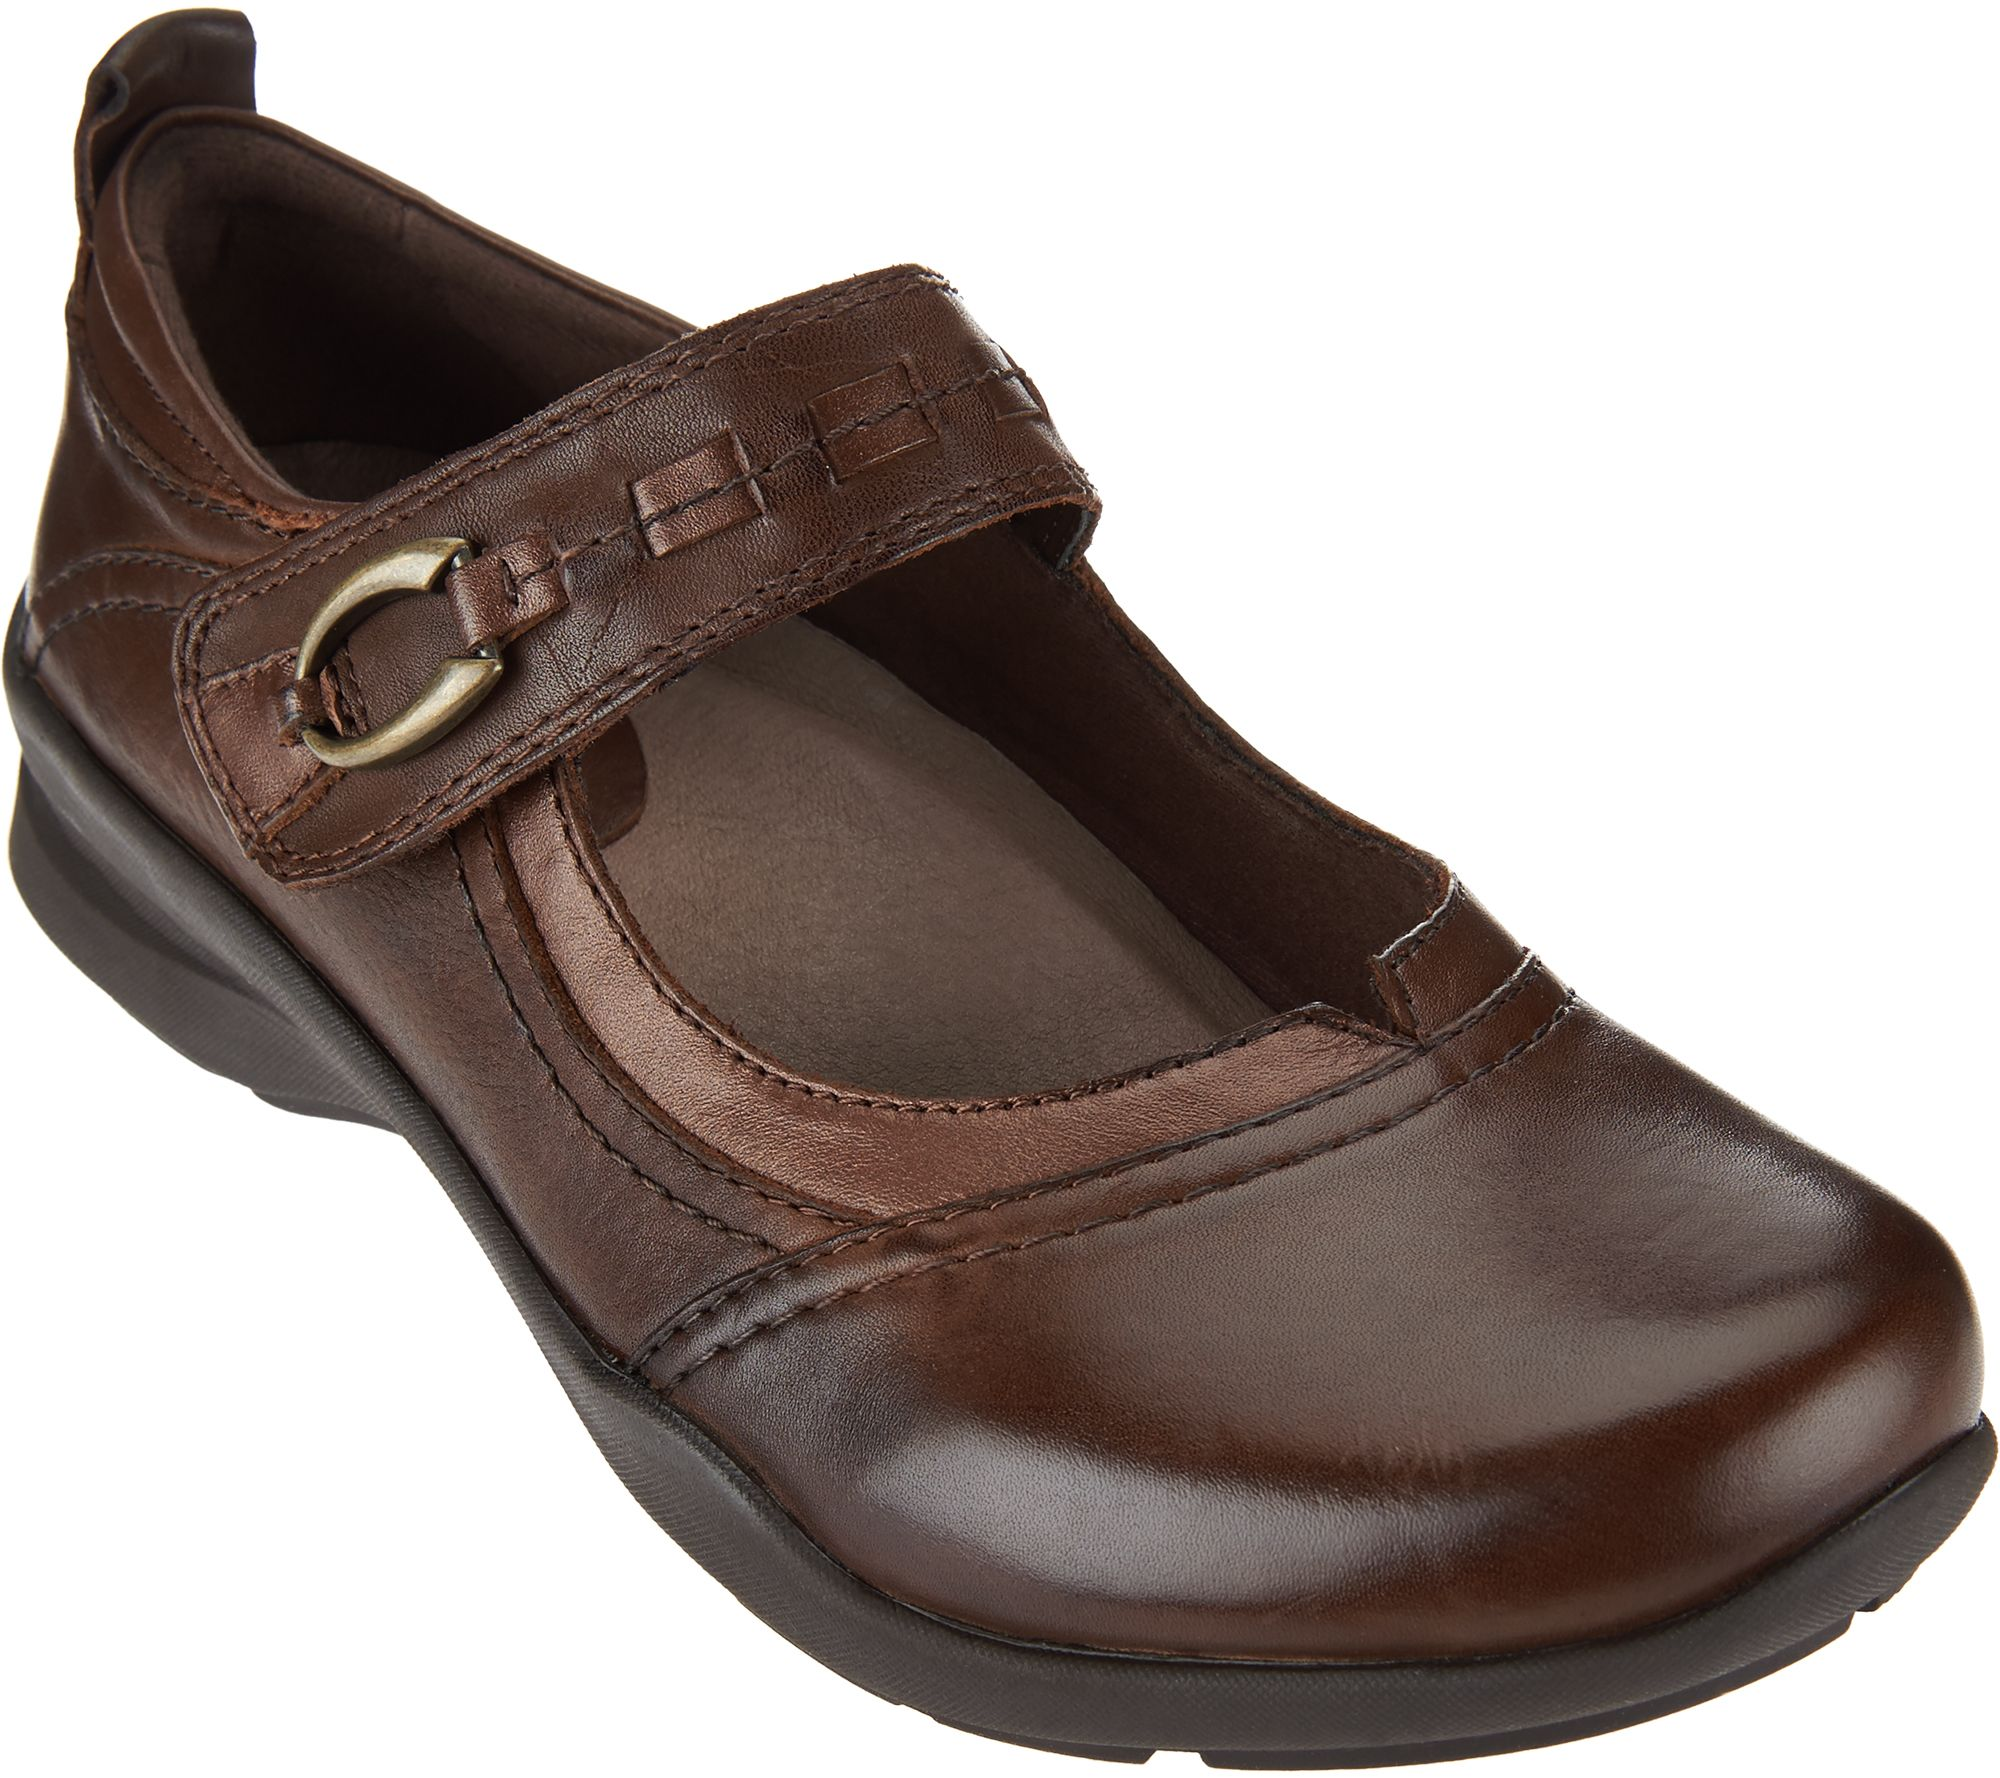 3cd3639357ed3 Earth Leather Mary Janes - Angelica - Page 1 — QVC.com